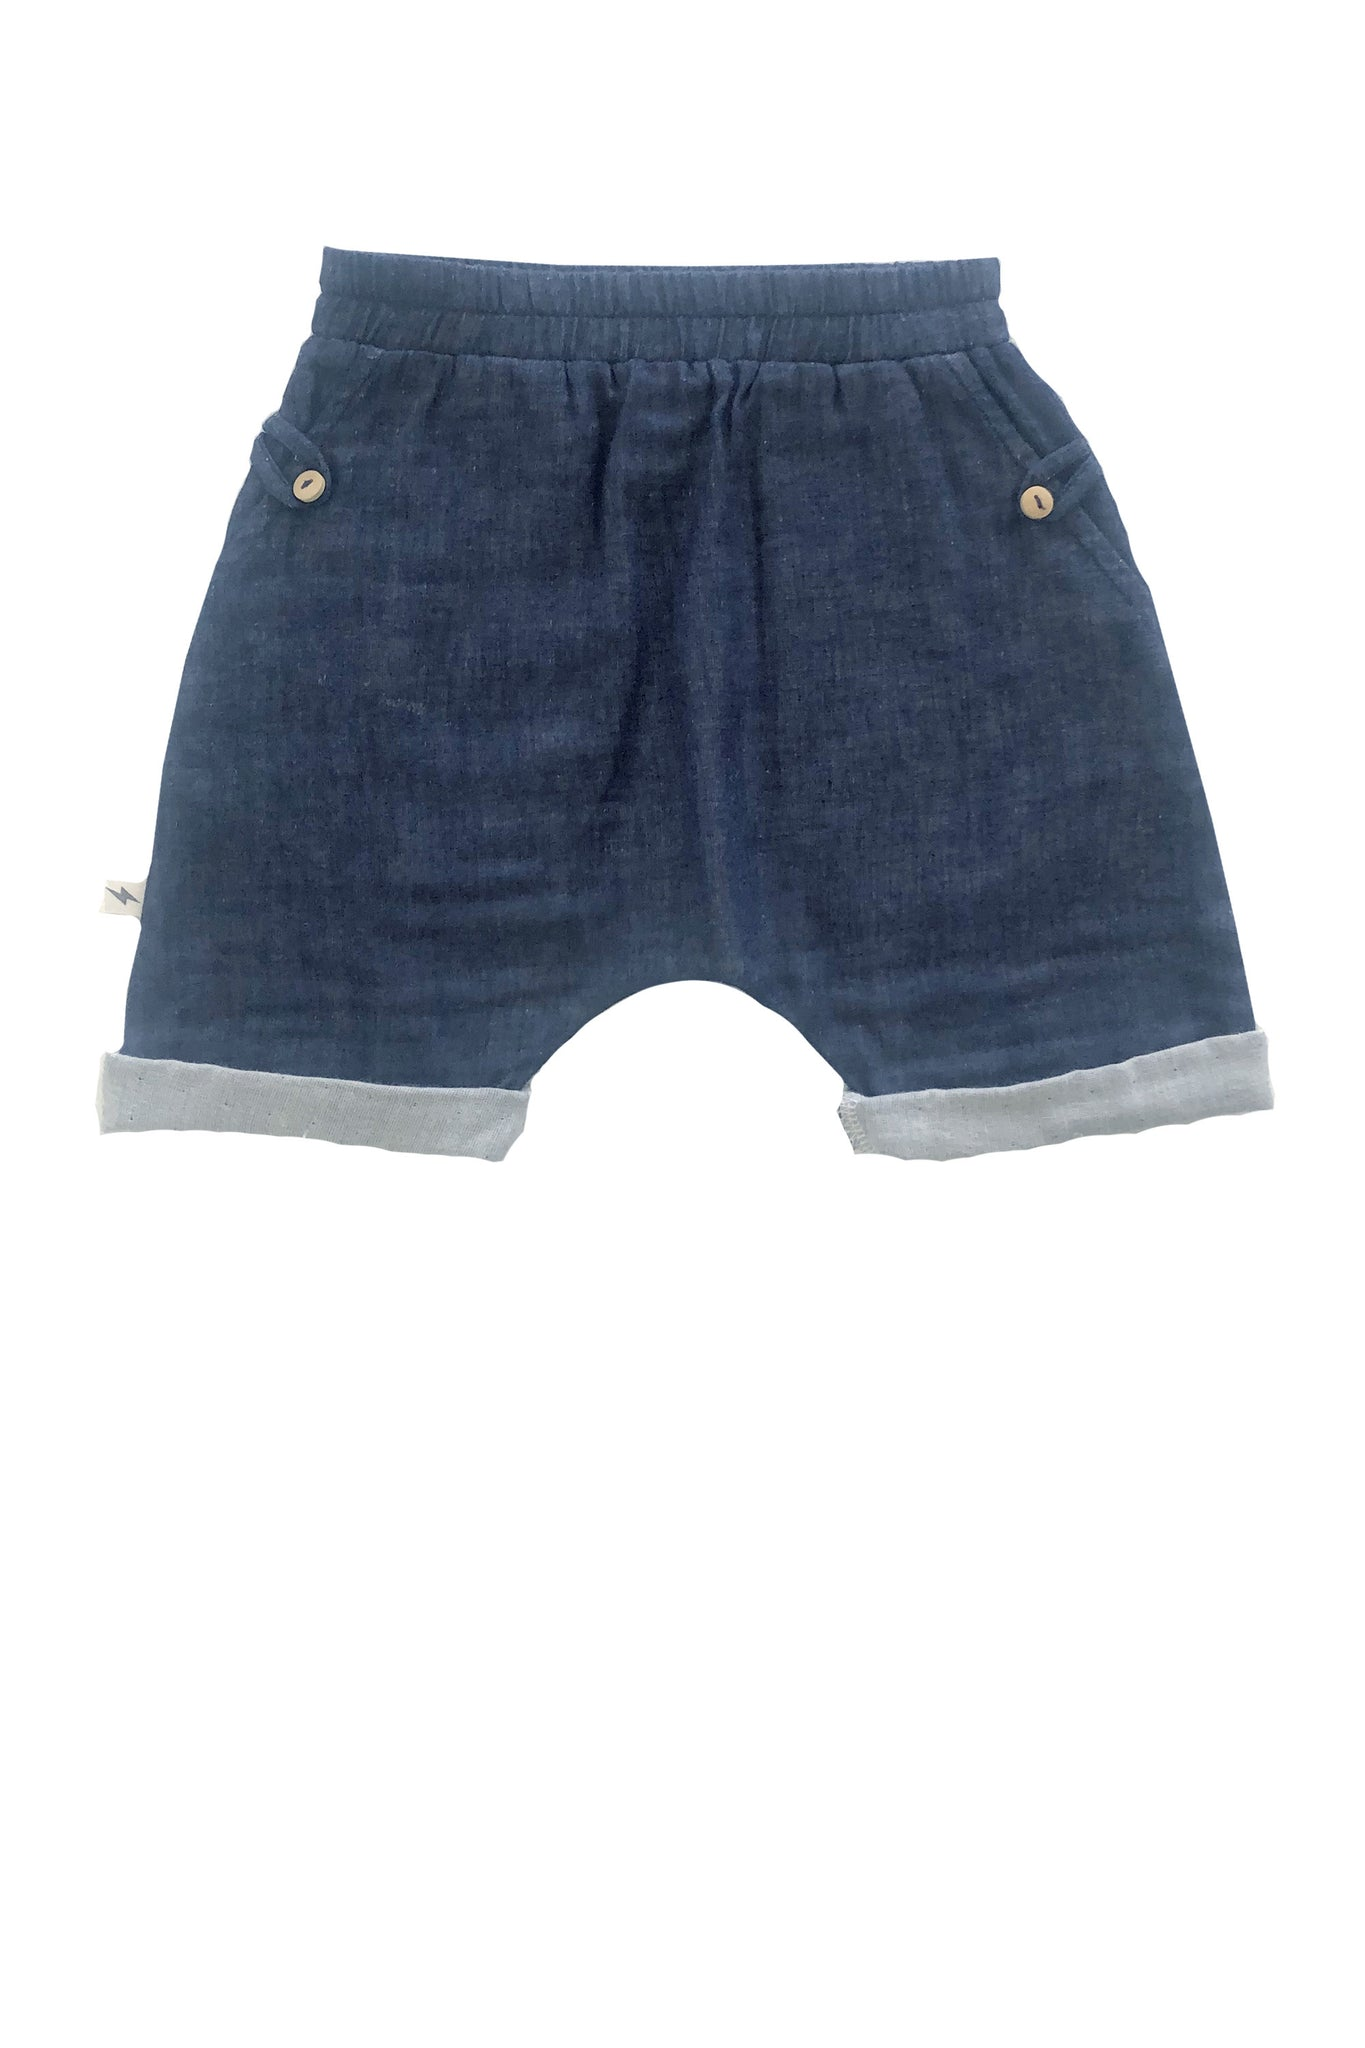 Easy Beach Shorts in Indigo